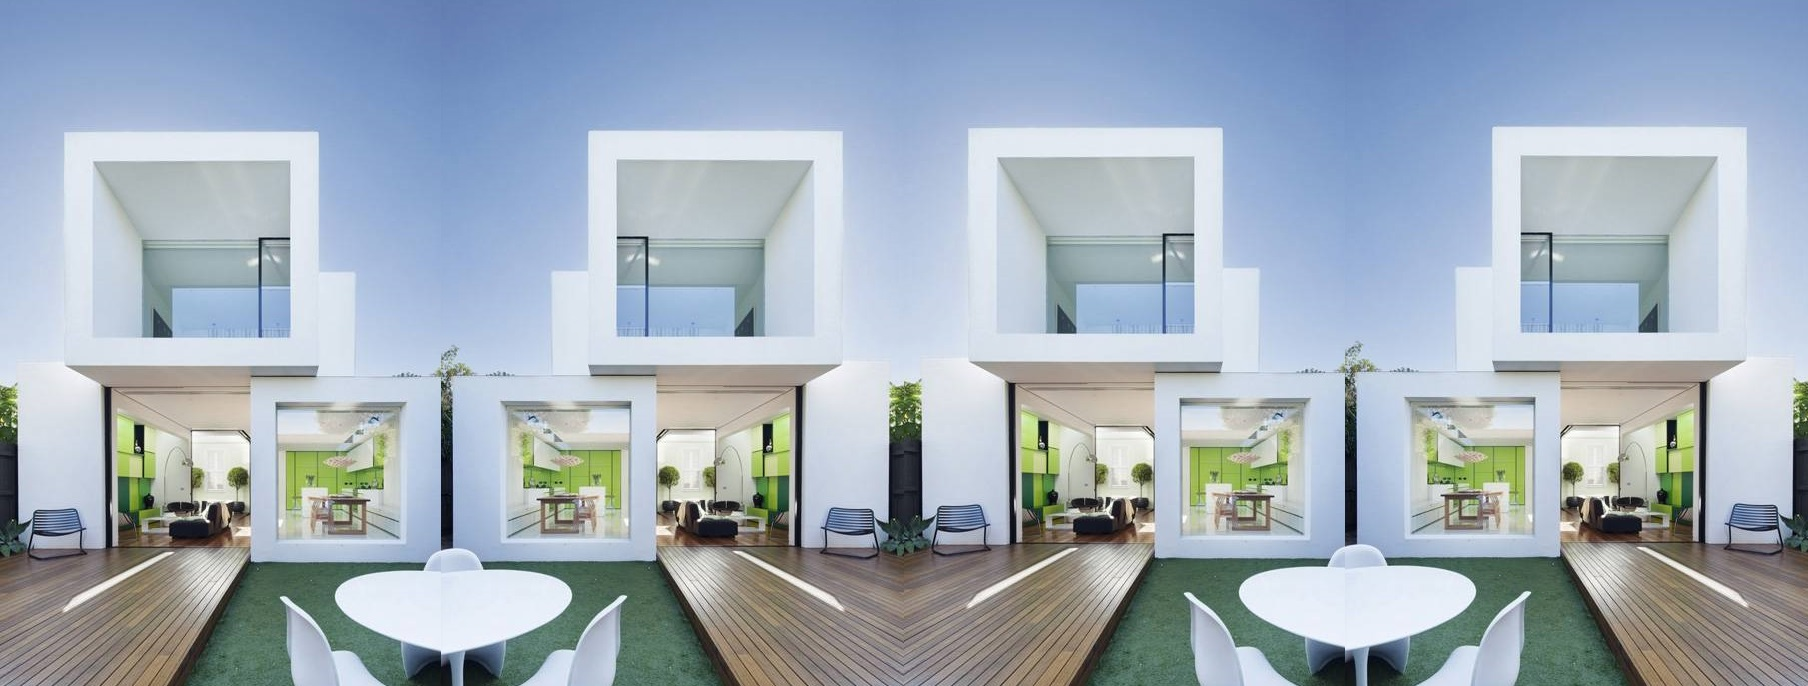 homebook.my | Featured Collections - boxy home - homestay